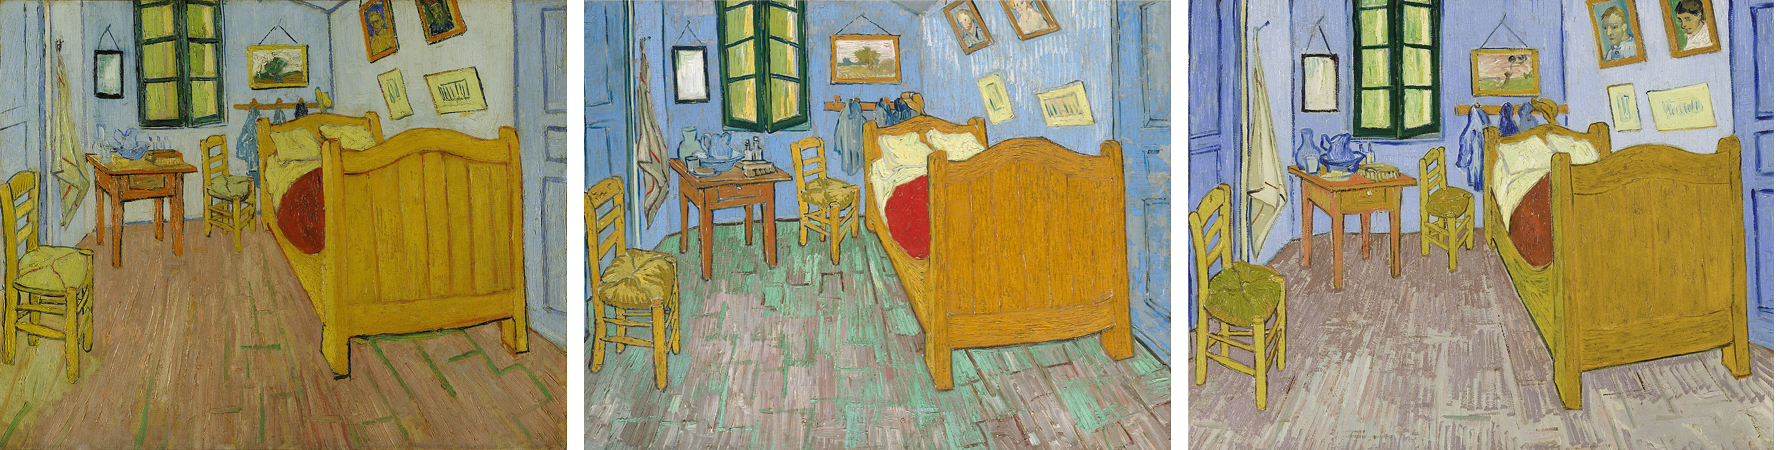 Can Gogh Room Painting